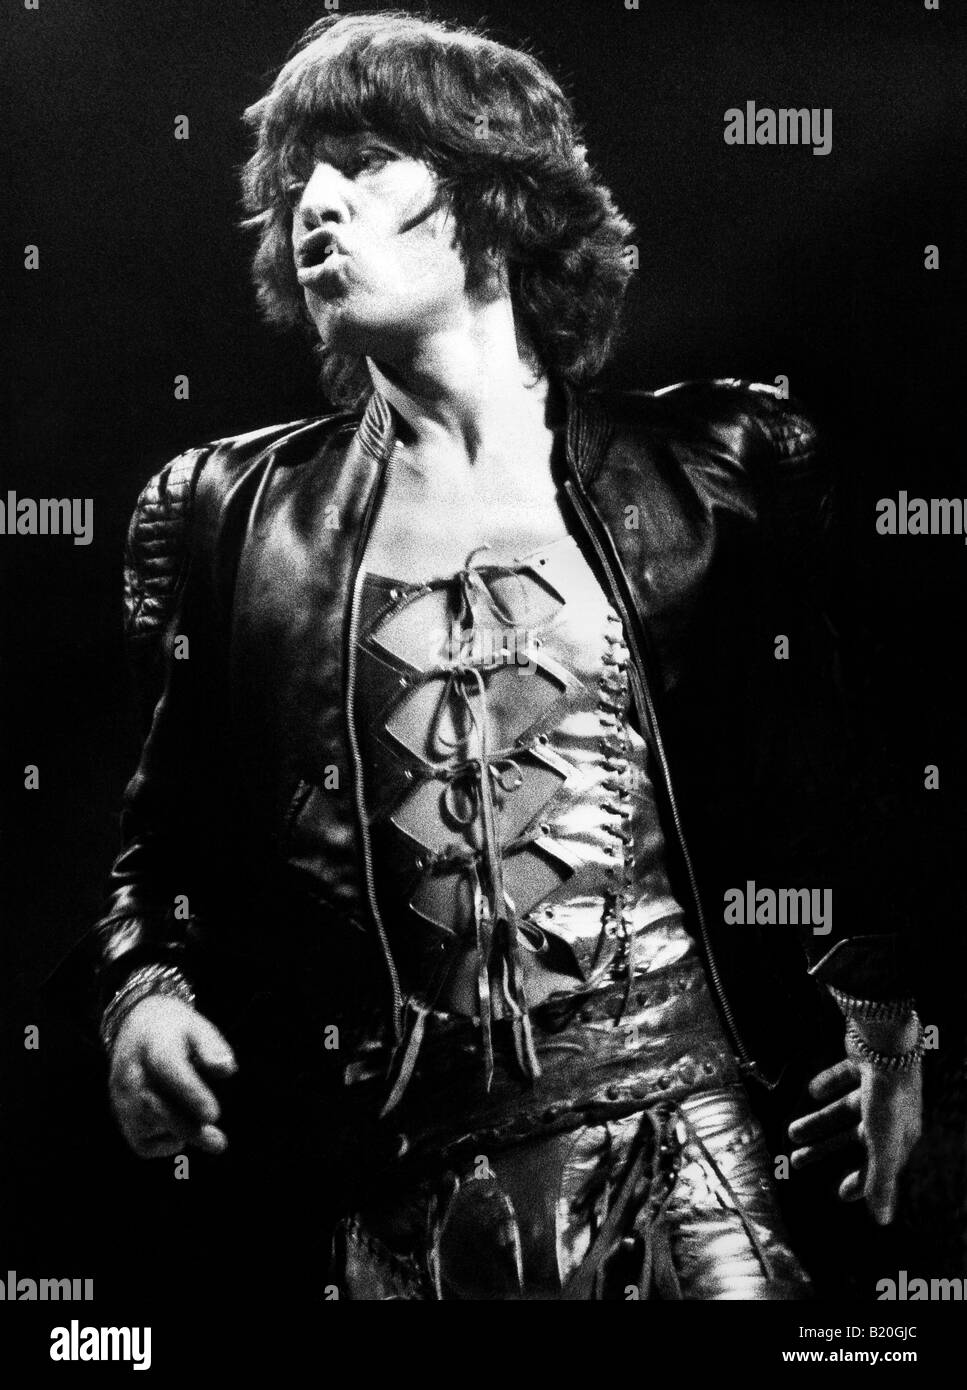 Mick Jagger at Wembly Concert in 1974 - Stock Image